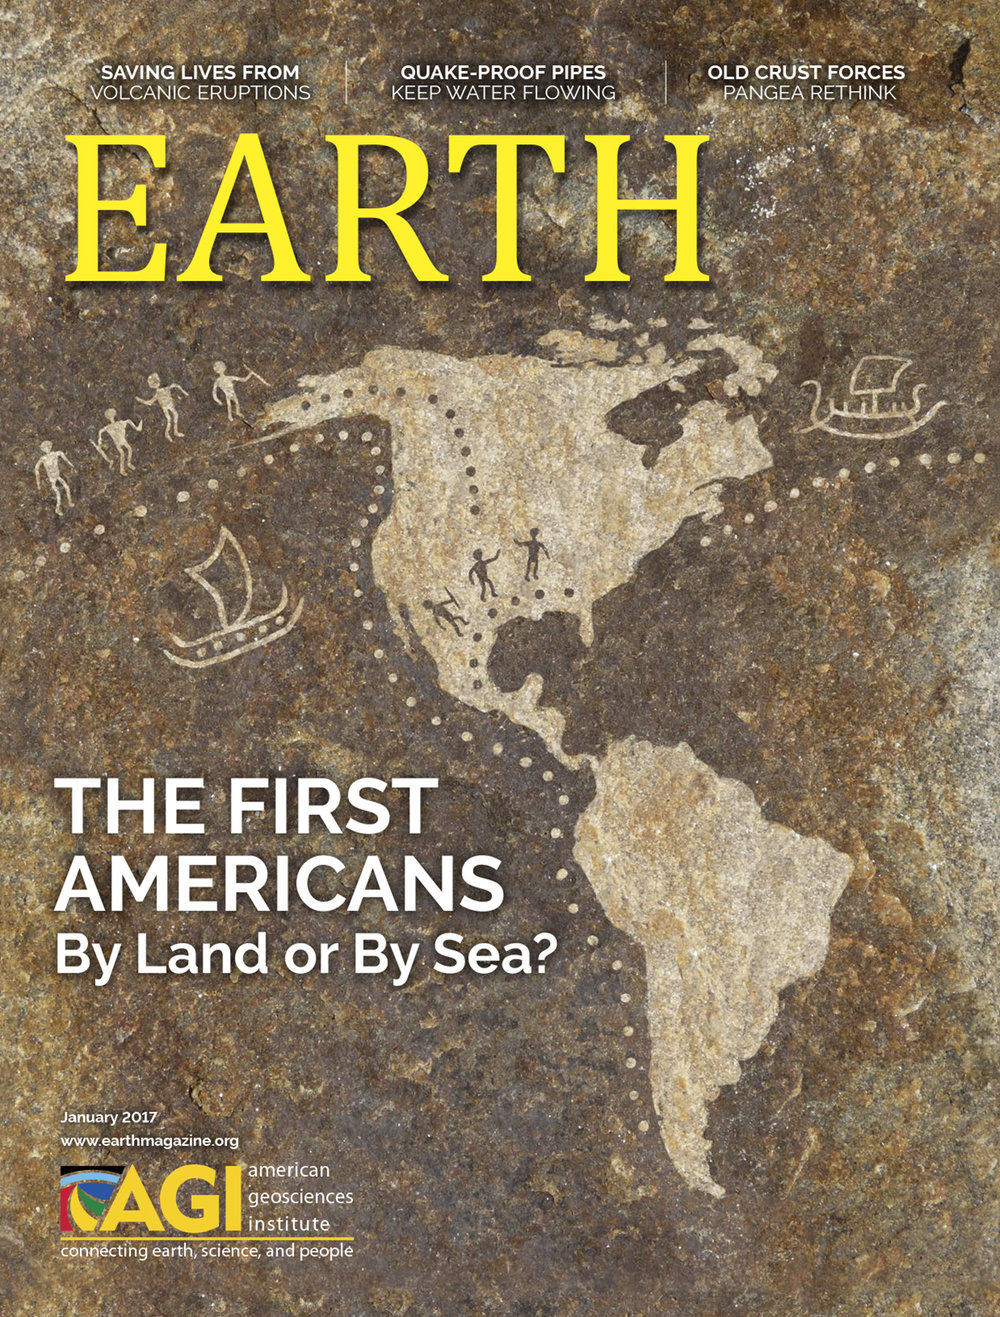 January 2017  EARTH Magazine, layout by Nicole Schmidgall  www.nicoleschmidgall.com